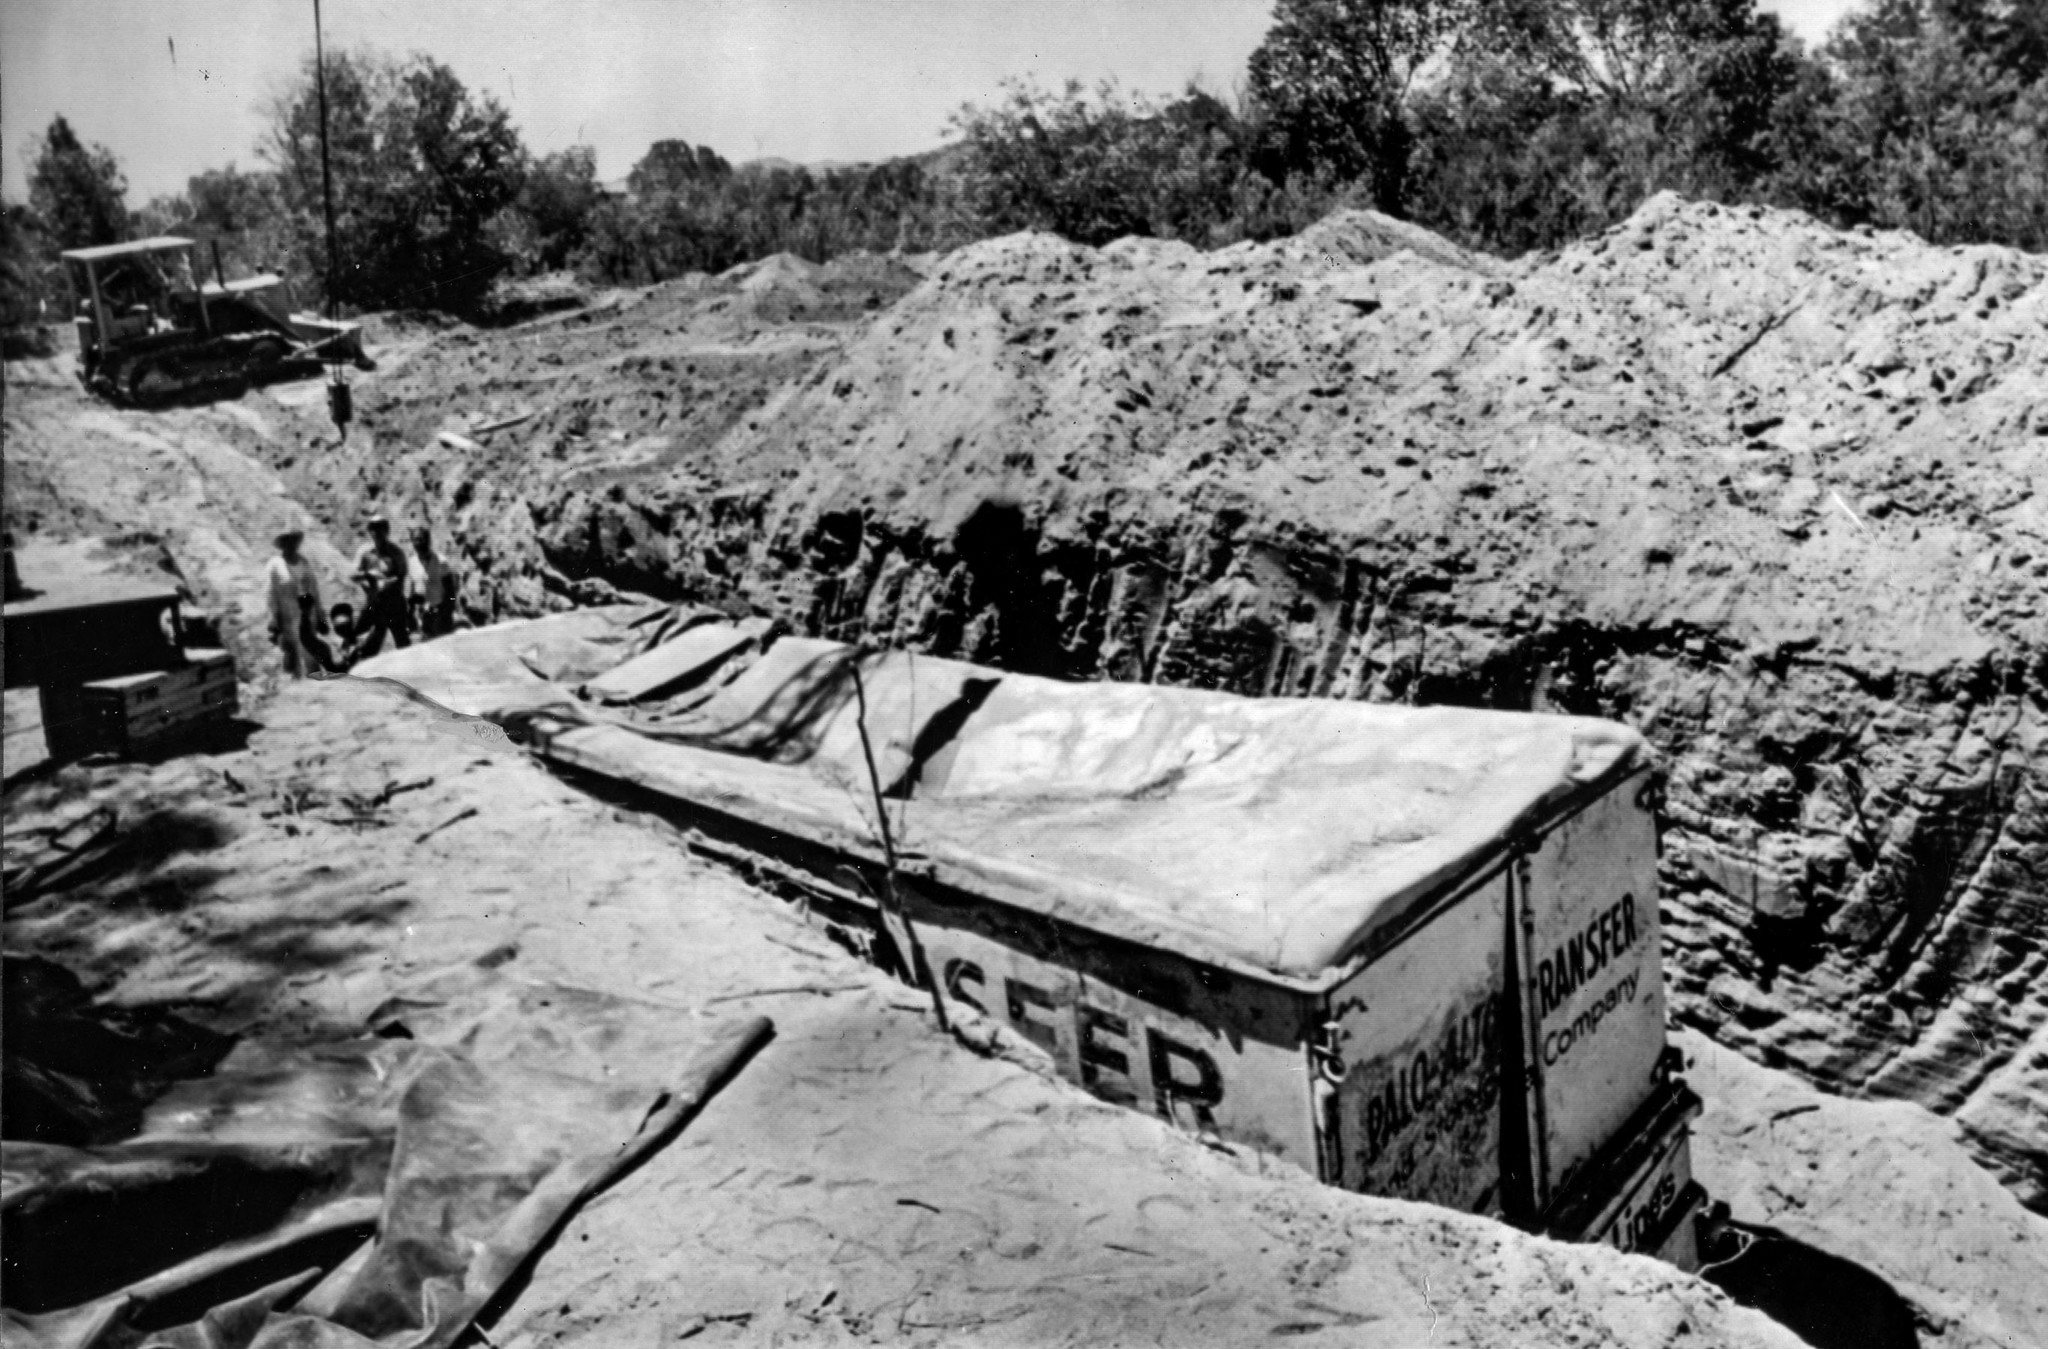 July 20, 1976: Moving van trailer in which the Chowchilla victims were imprisoned after being dug up